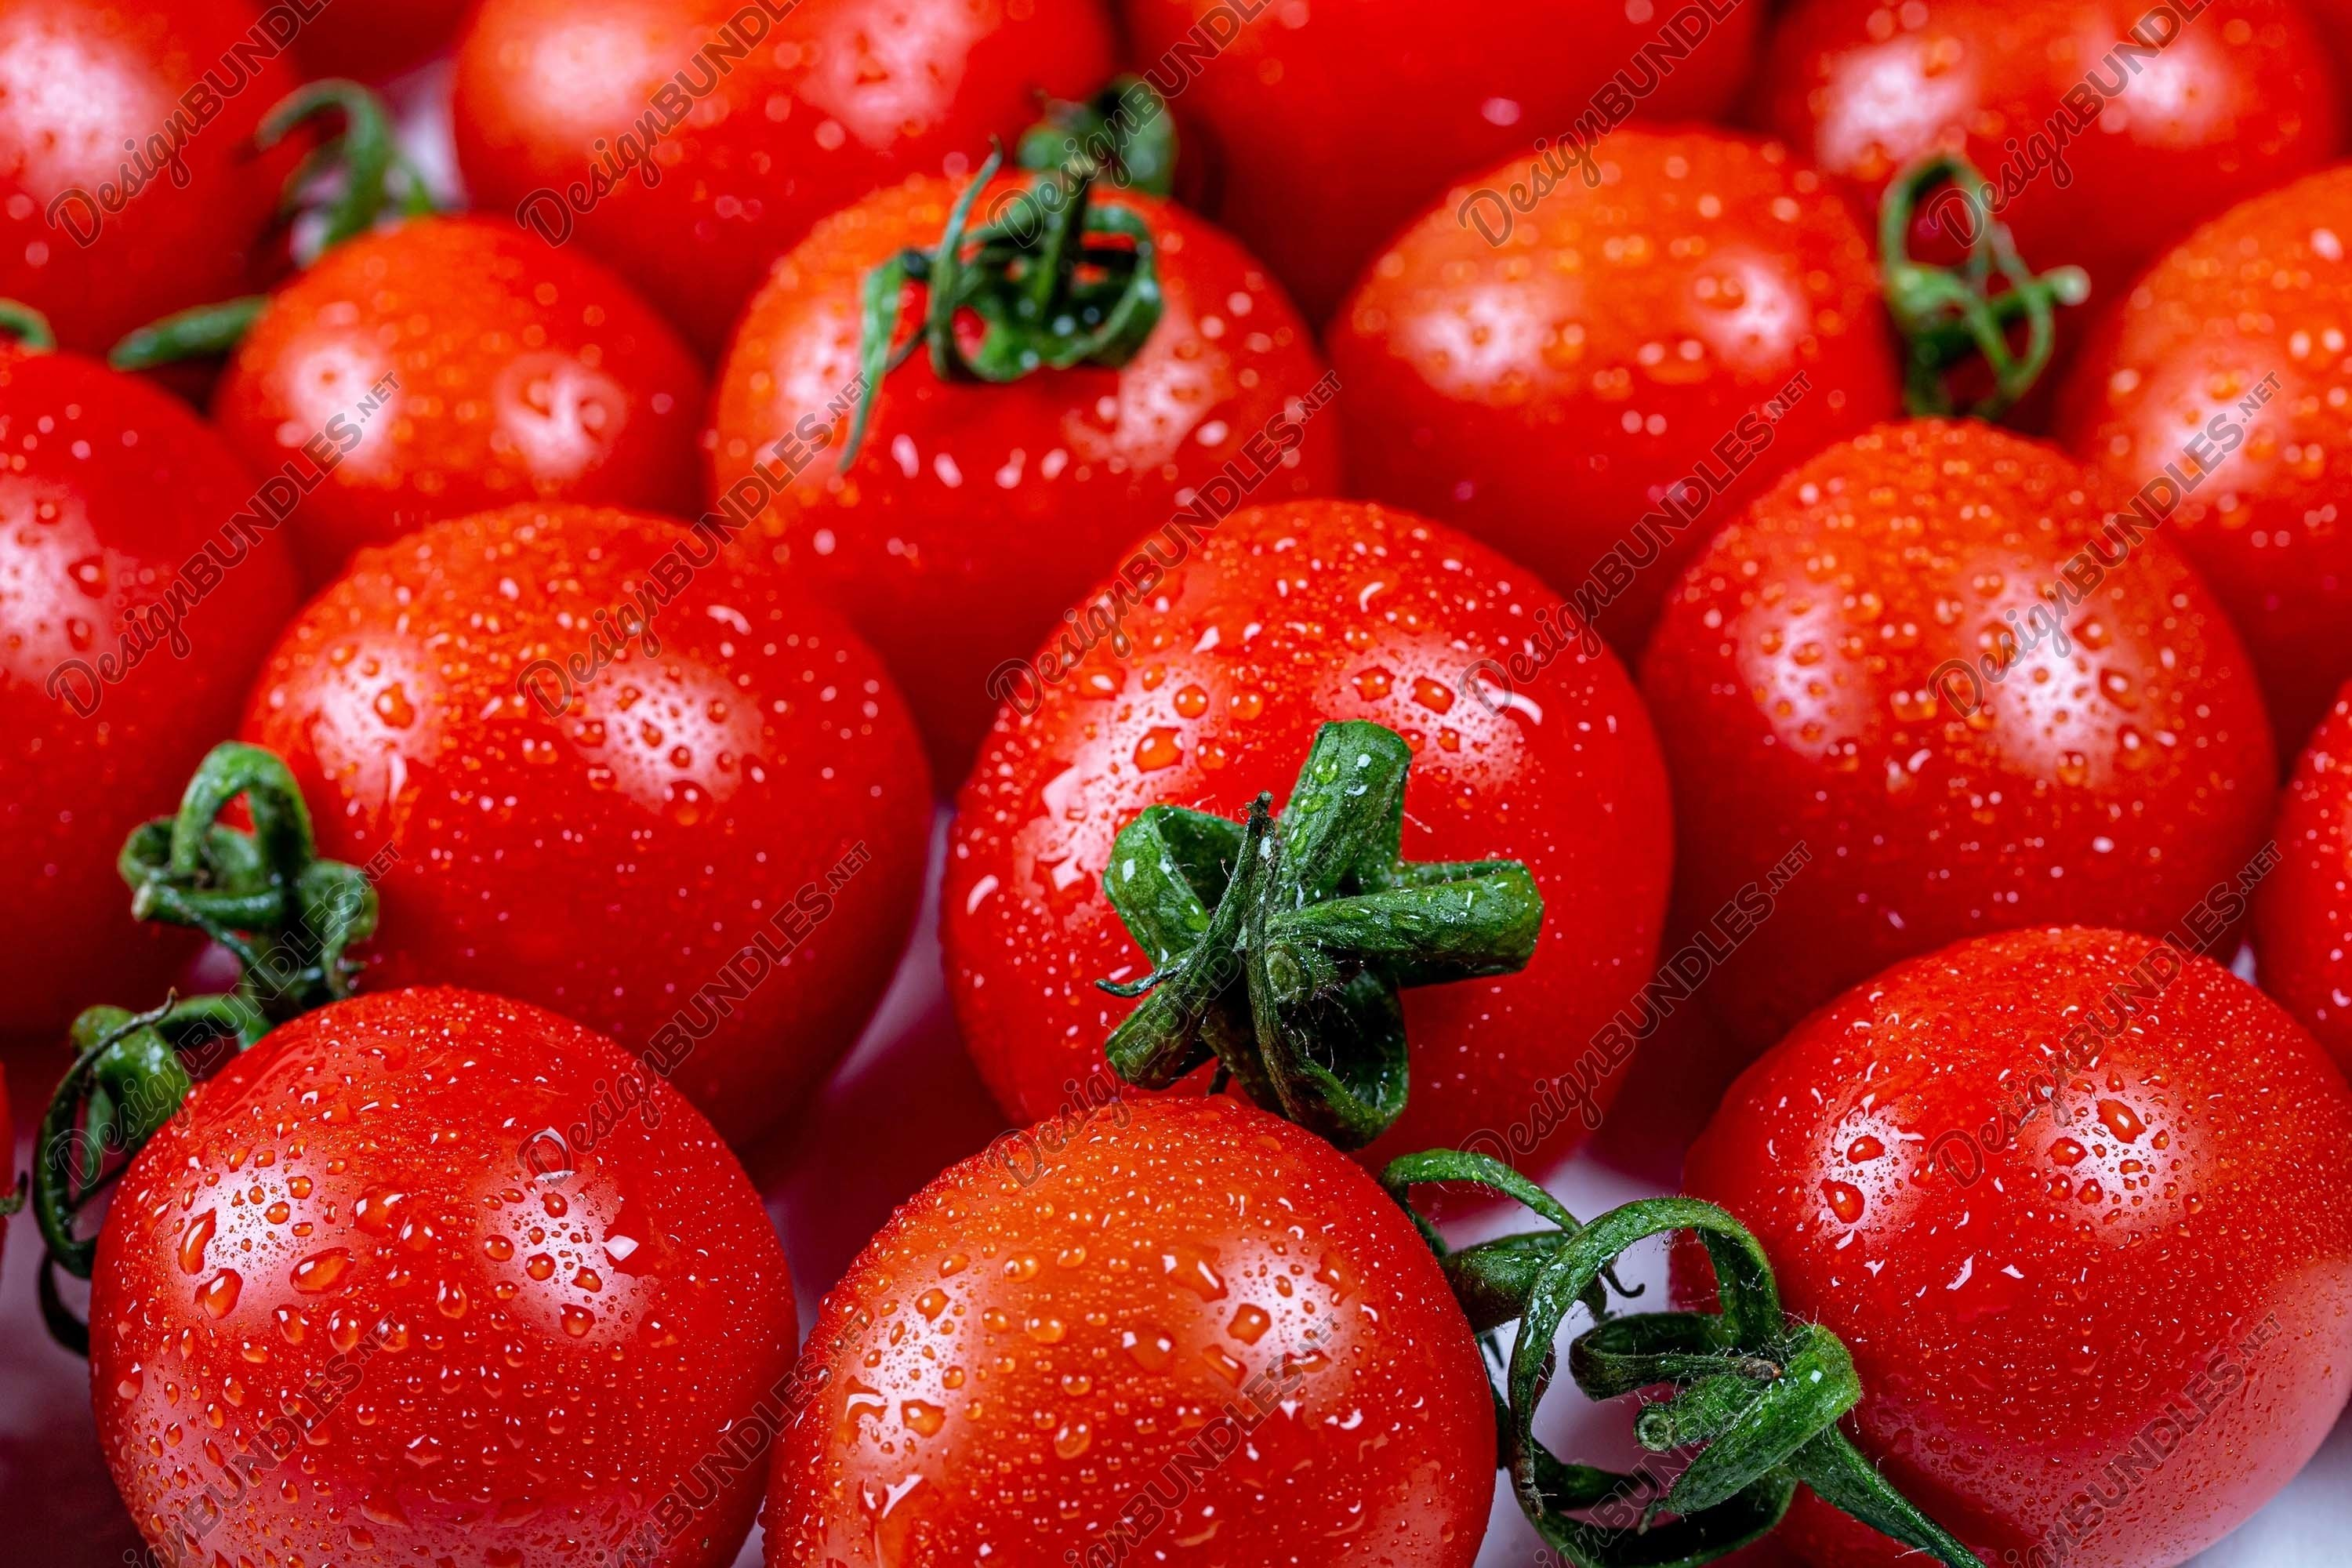 Stock Photo - Close-up of a heap of tomatoes example image 1